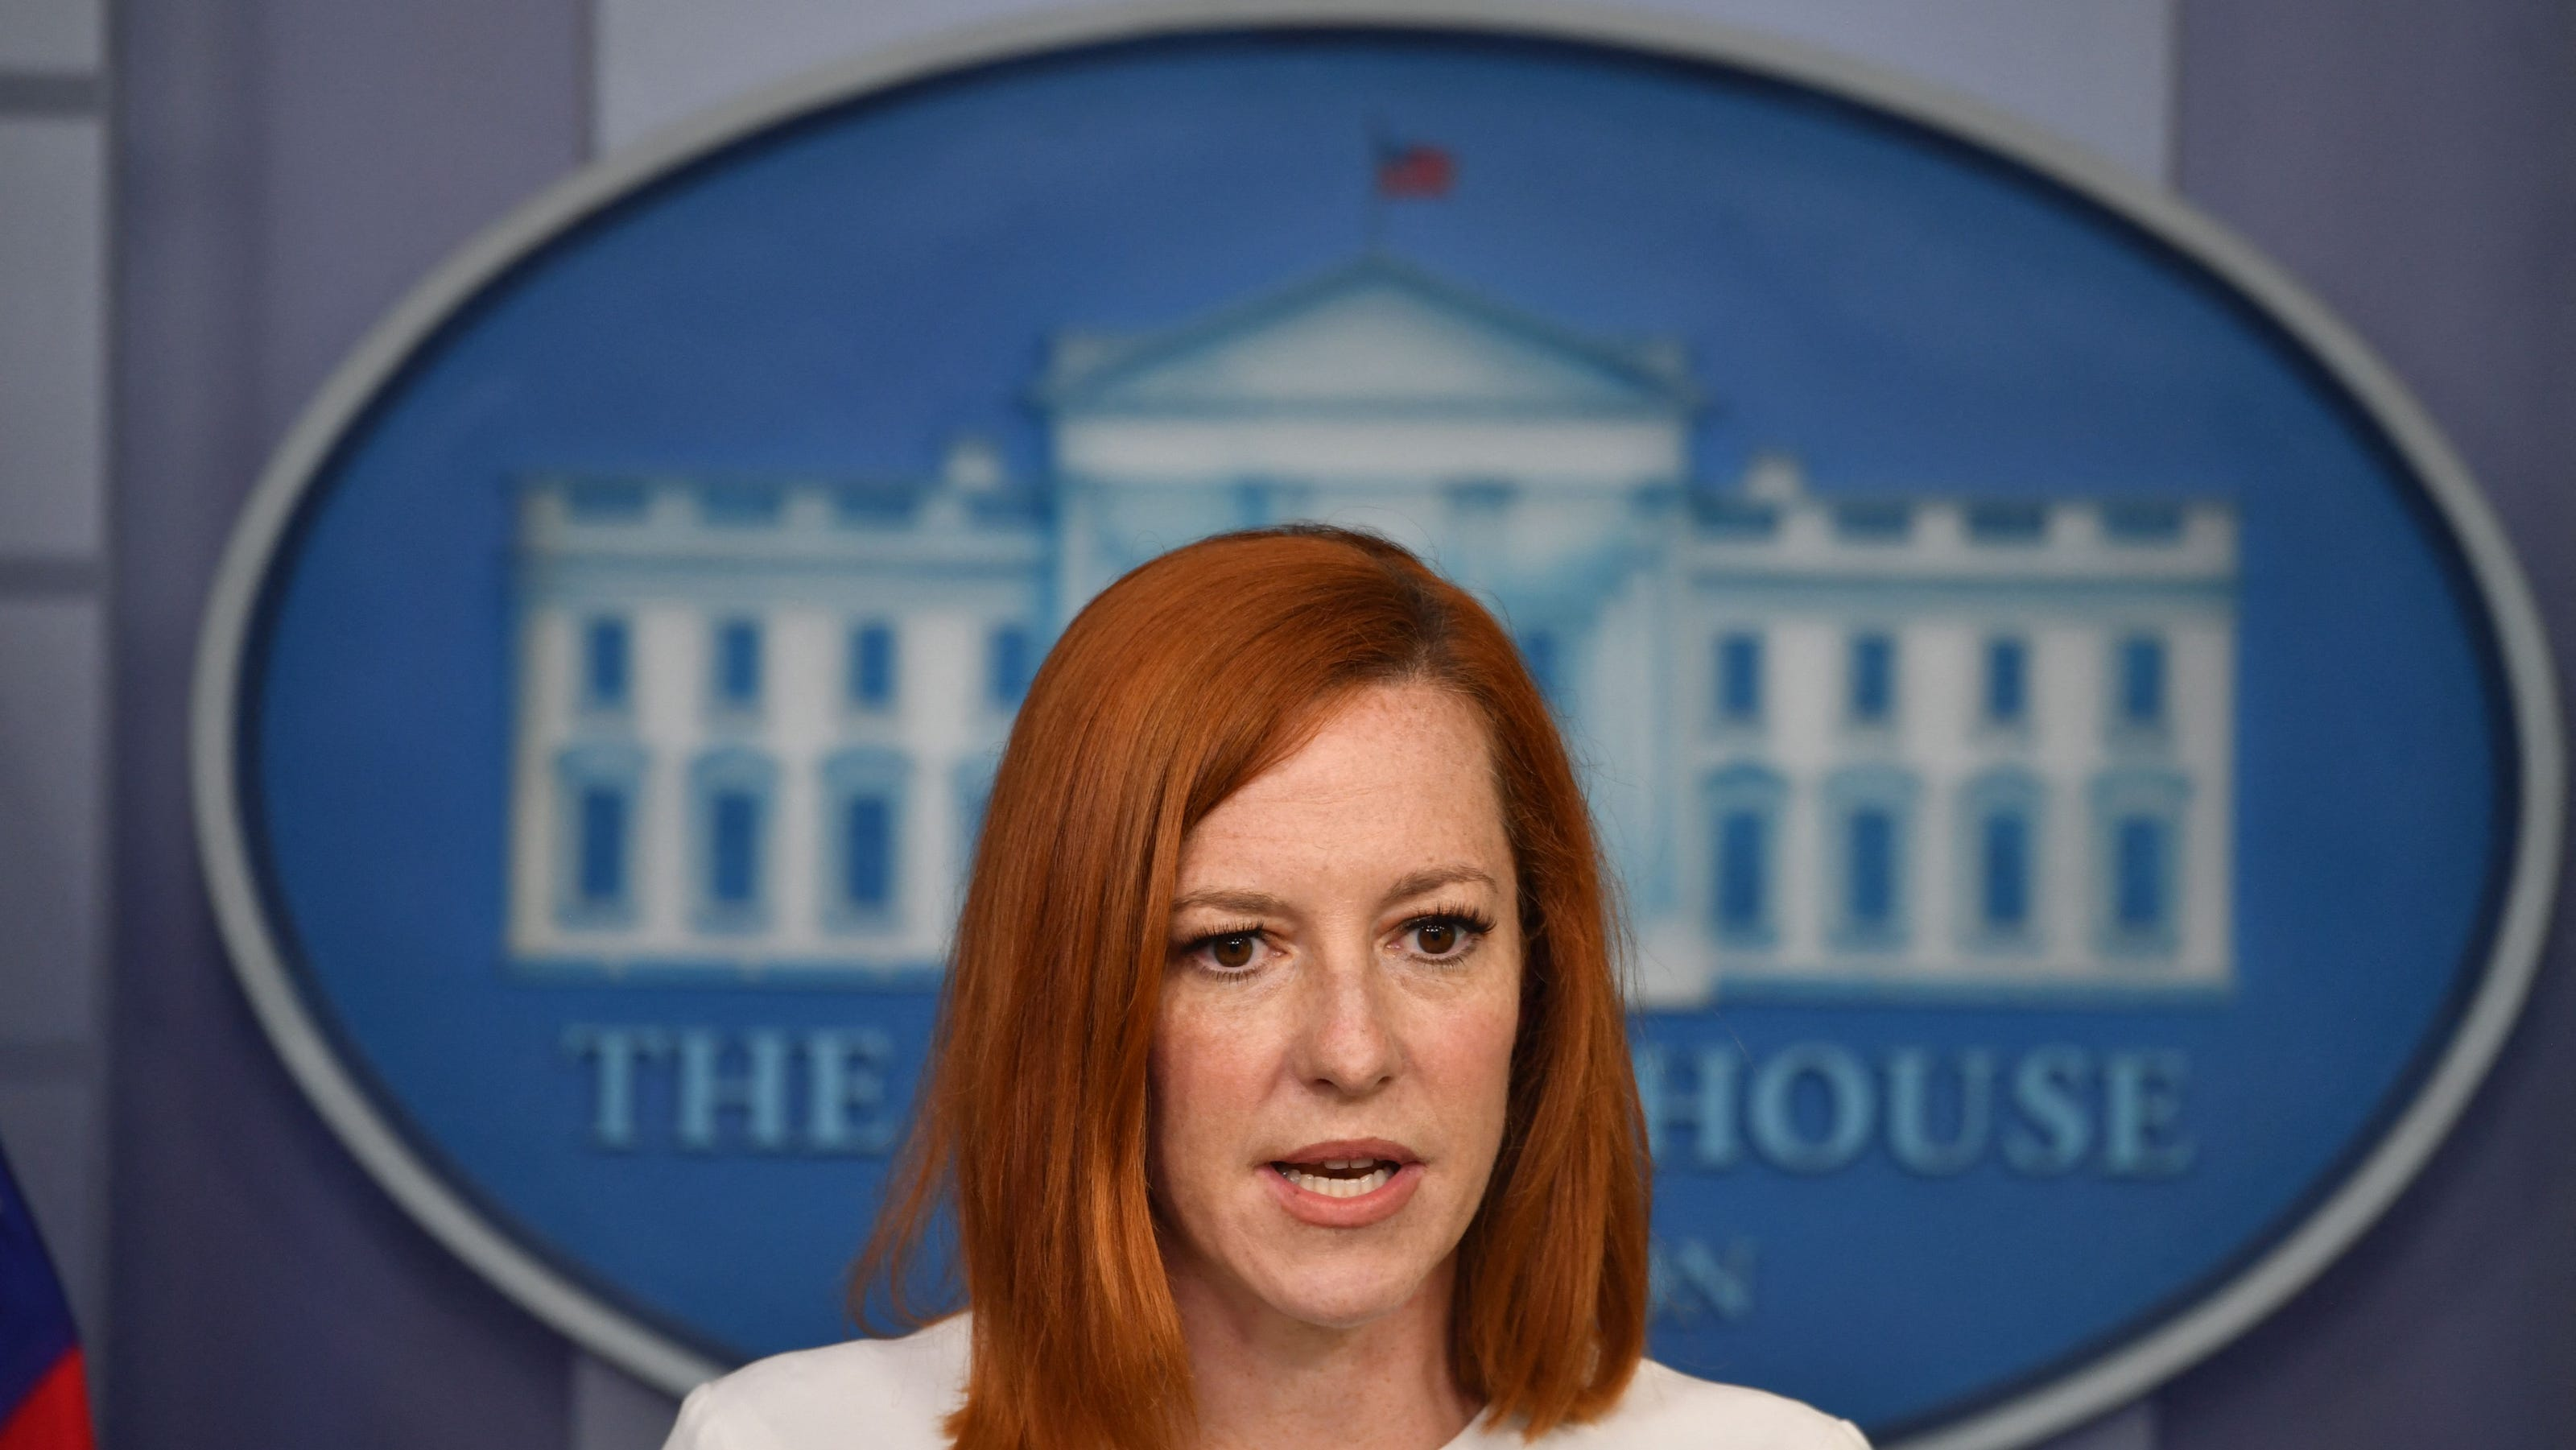 White House declines to release number of breakthrough COVID-19 cases among vaccinated staff